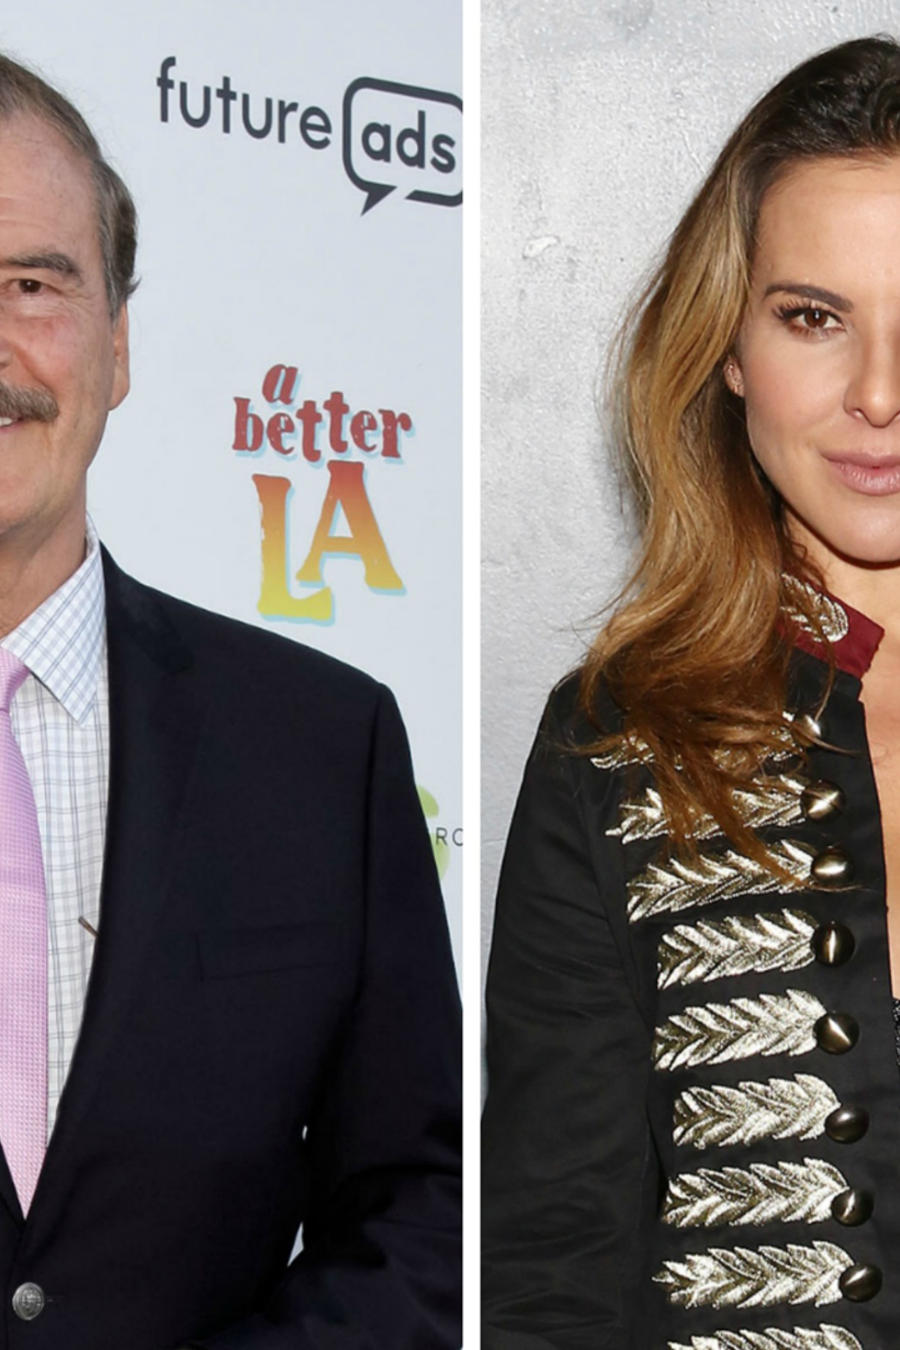 Vicente Fox y Kate del Castillo